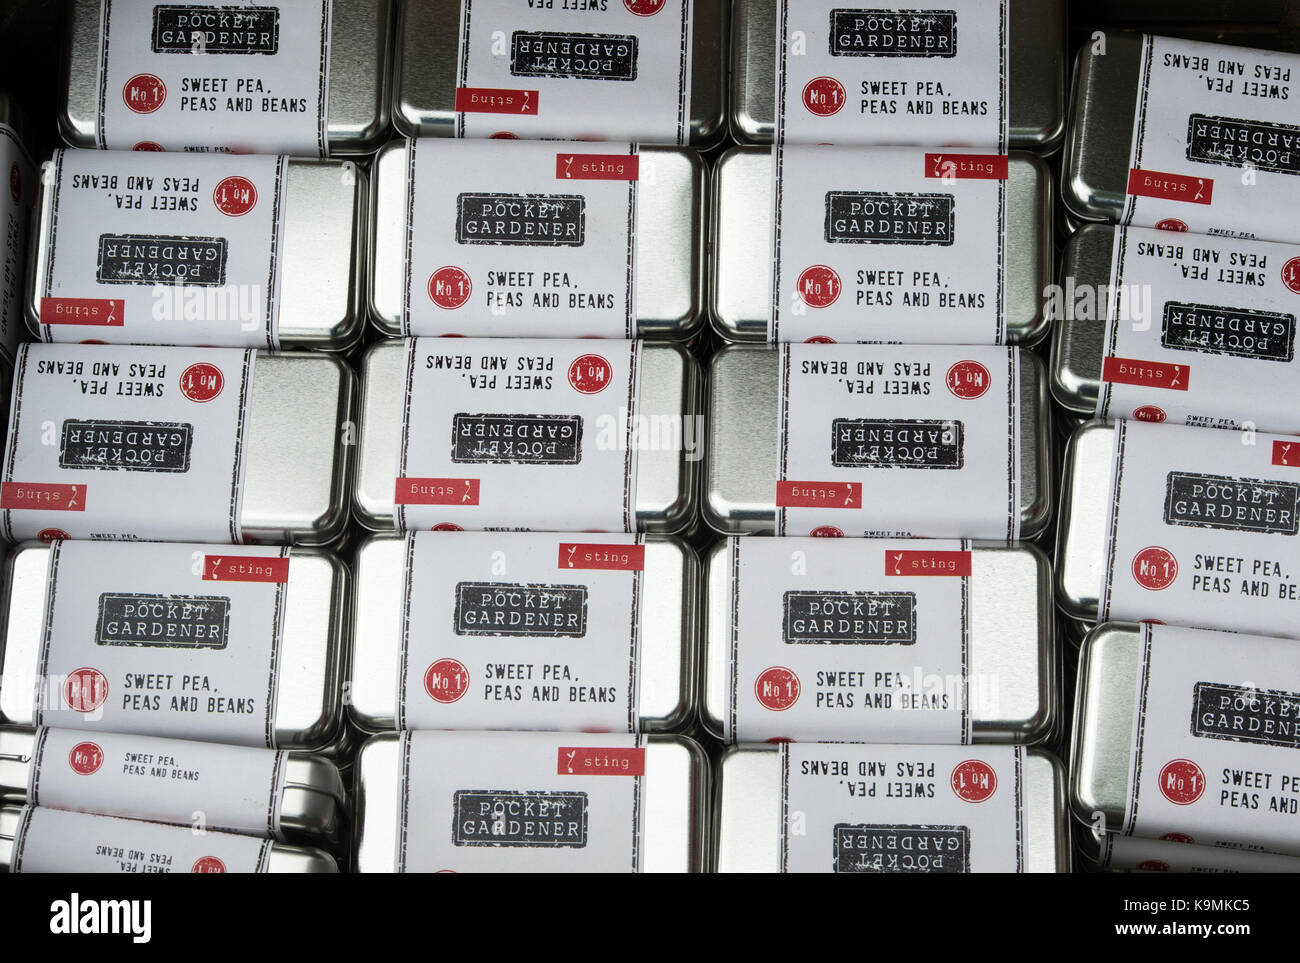 Pocket gardener kit tins on sale at a flower show. UK - Stock Image